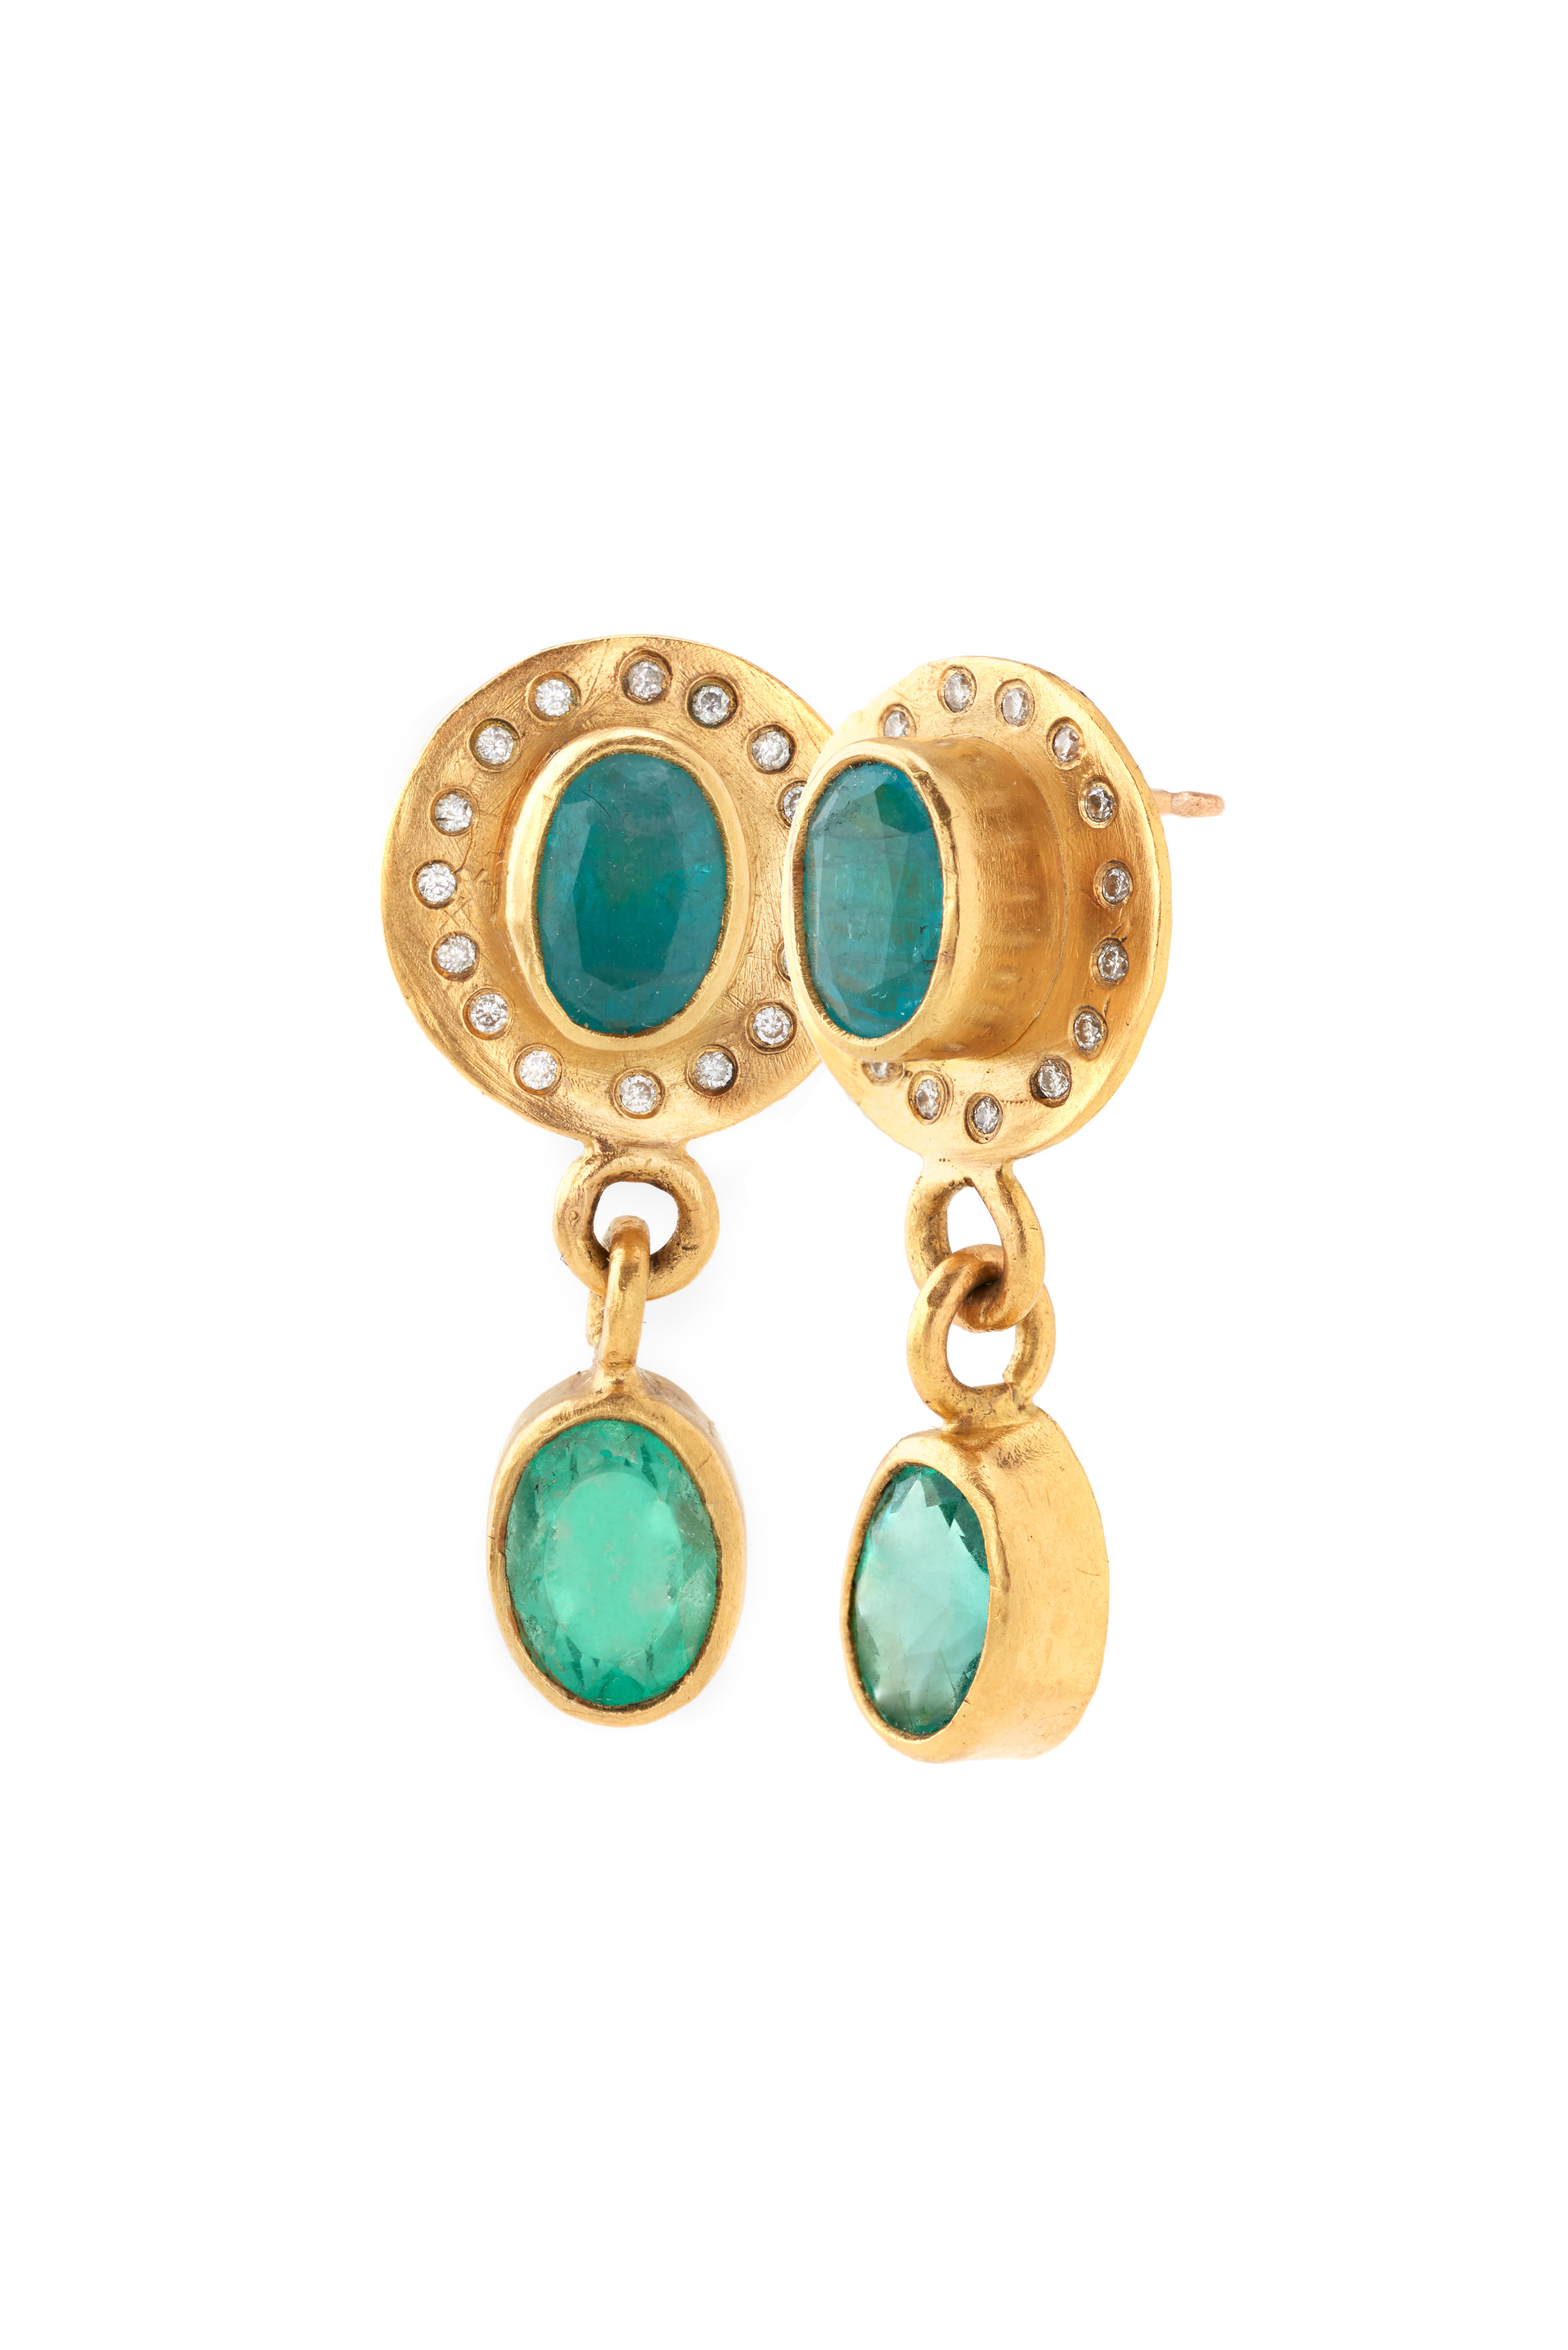 22K gold drop earrings with diamonds, Colombian emeralds and Paraiba tourmalines  -